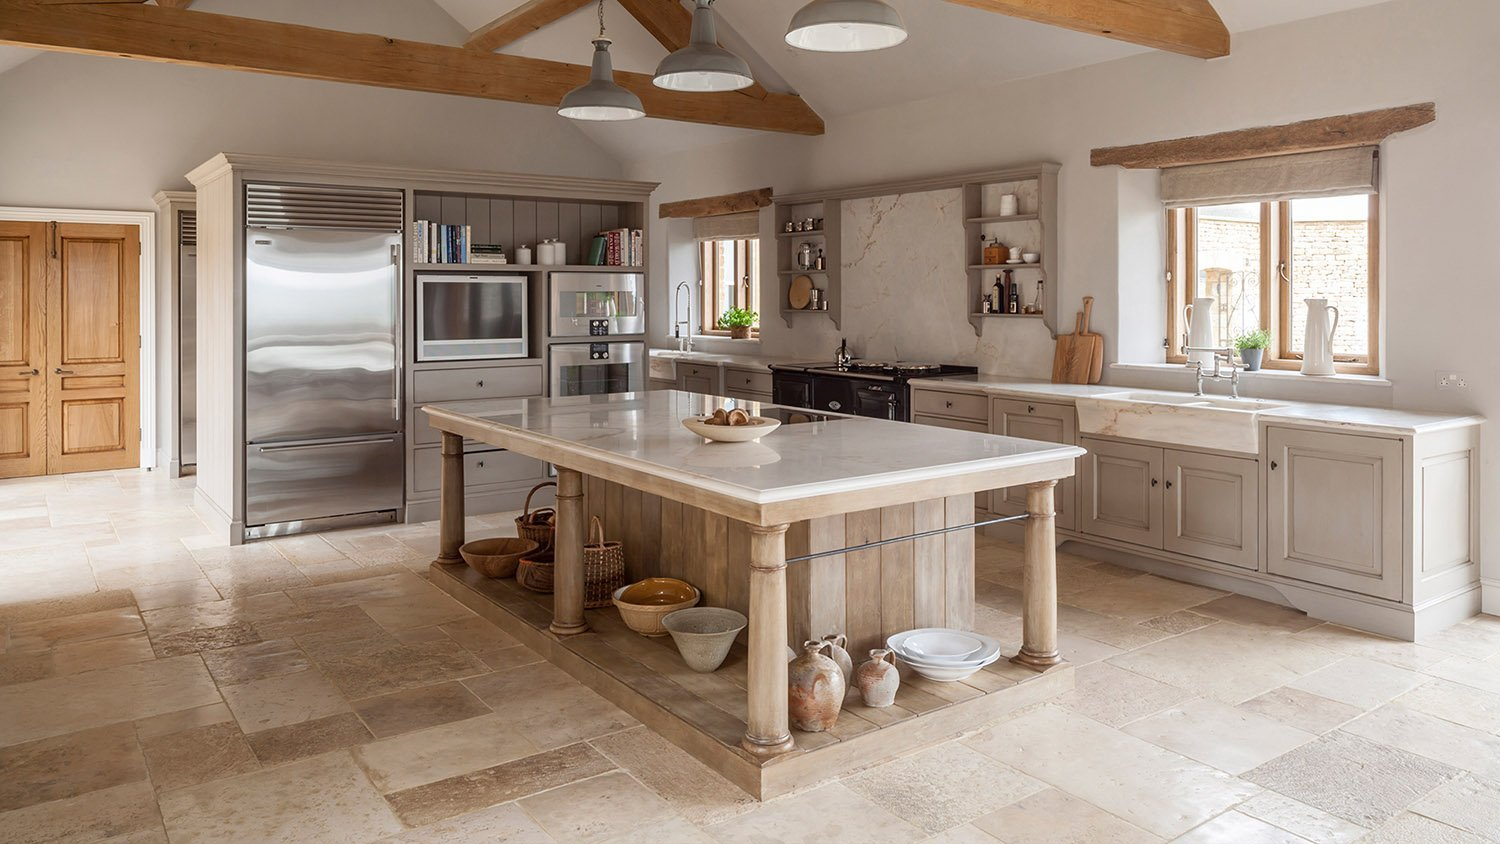 Modern rustic kitchen with Flemish design influence